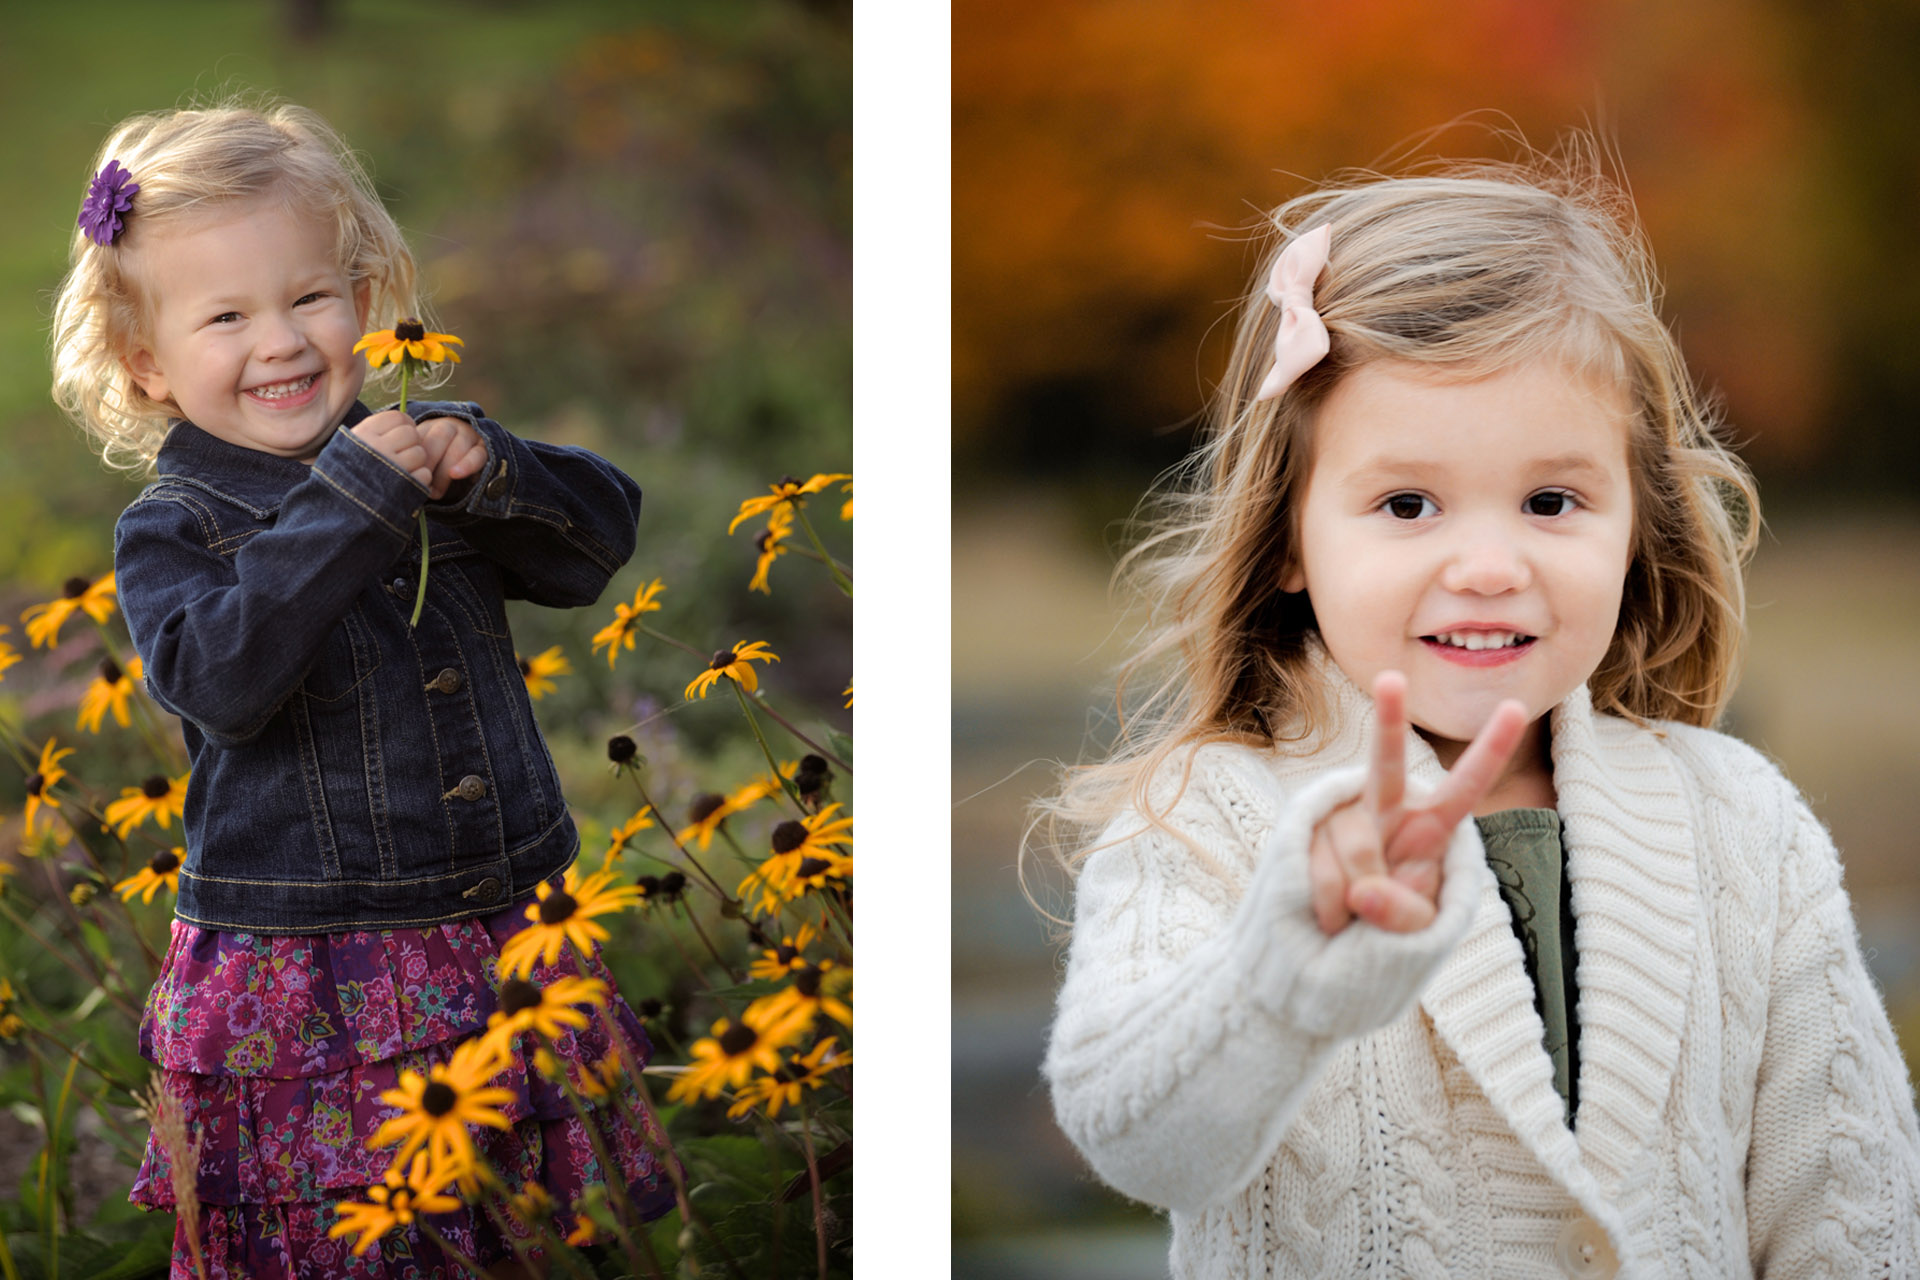 Best Detroit children photographer captures kids being sweet and silly like these two little girls in metro Detroit, Michigan children photography session.